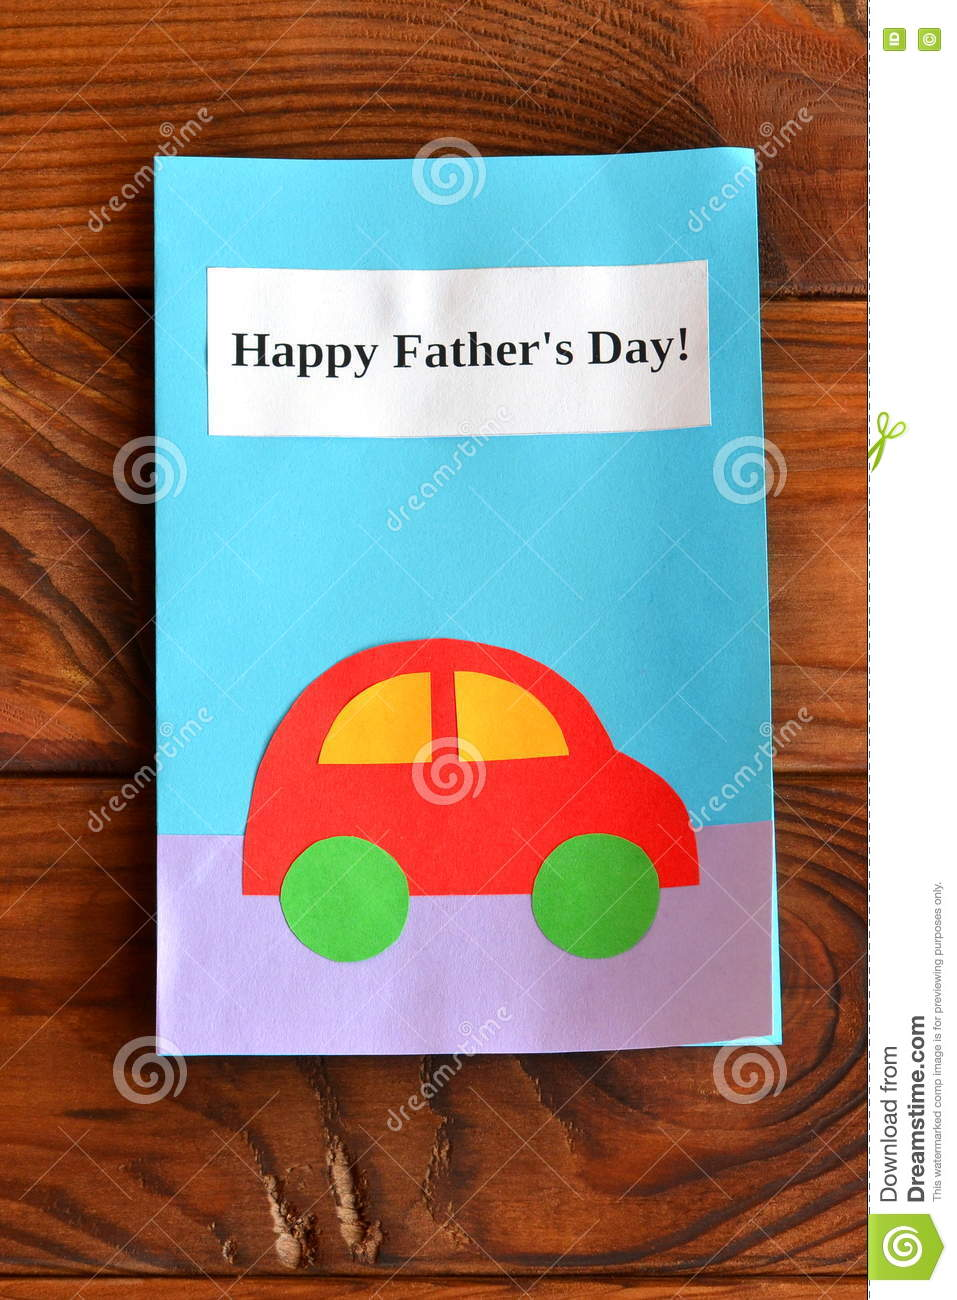 203 Car Craft Kids Photos Free Royalty Free Stock Photos From Dreamstime